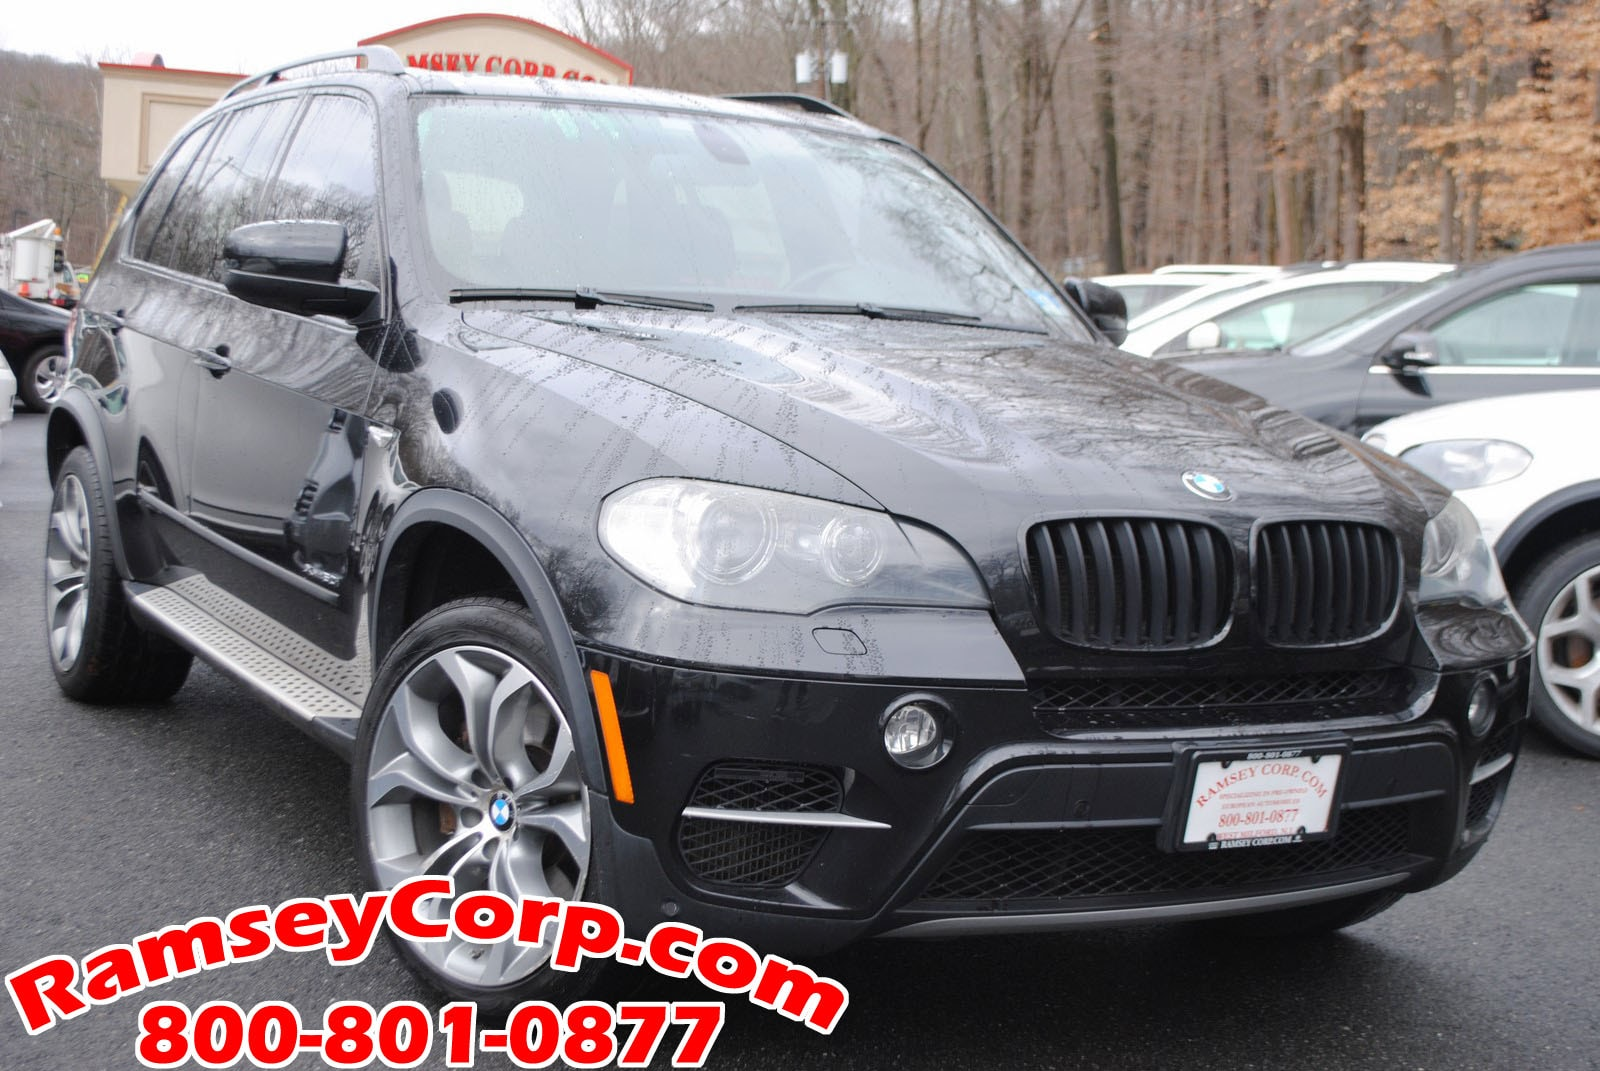 Used 2011 bmw x5 xdrive50i for sale west milford nj for 2011 bmw x5 exterior dimensions